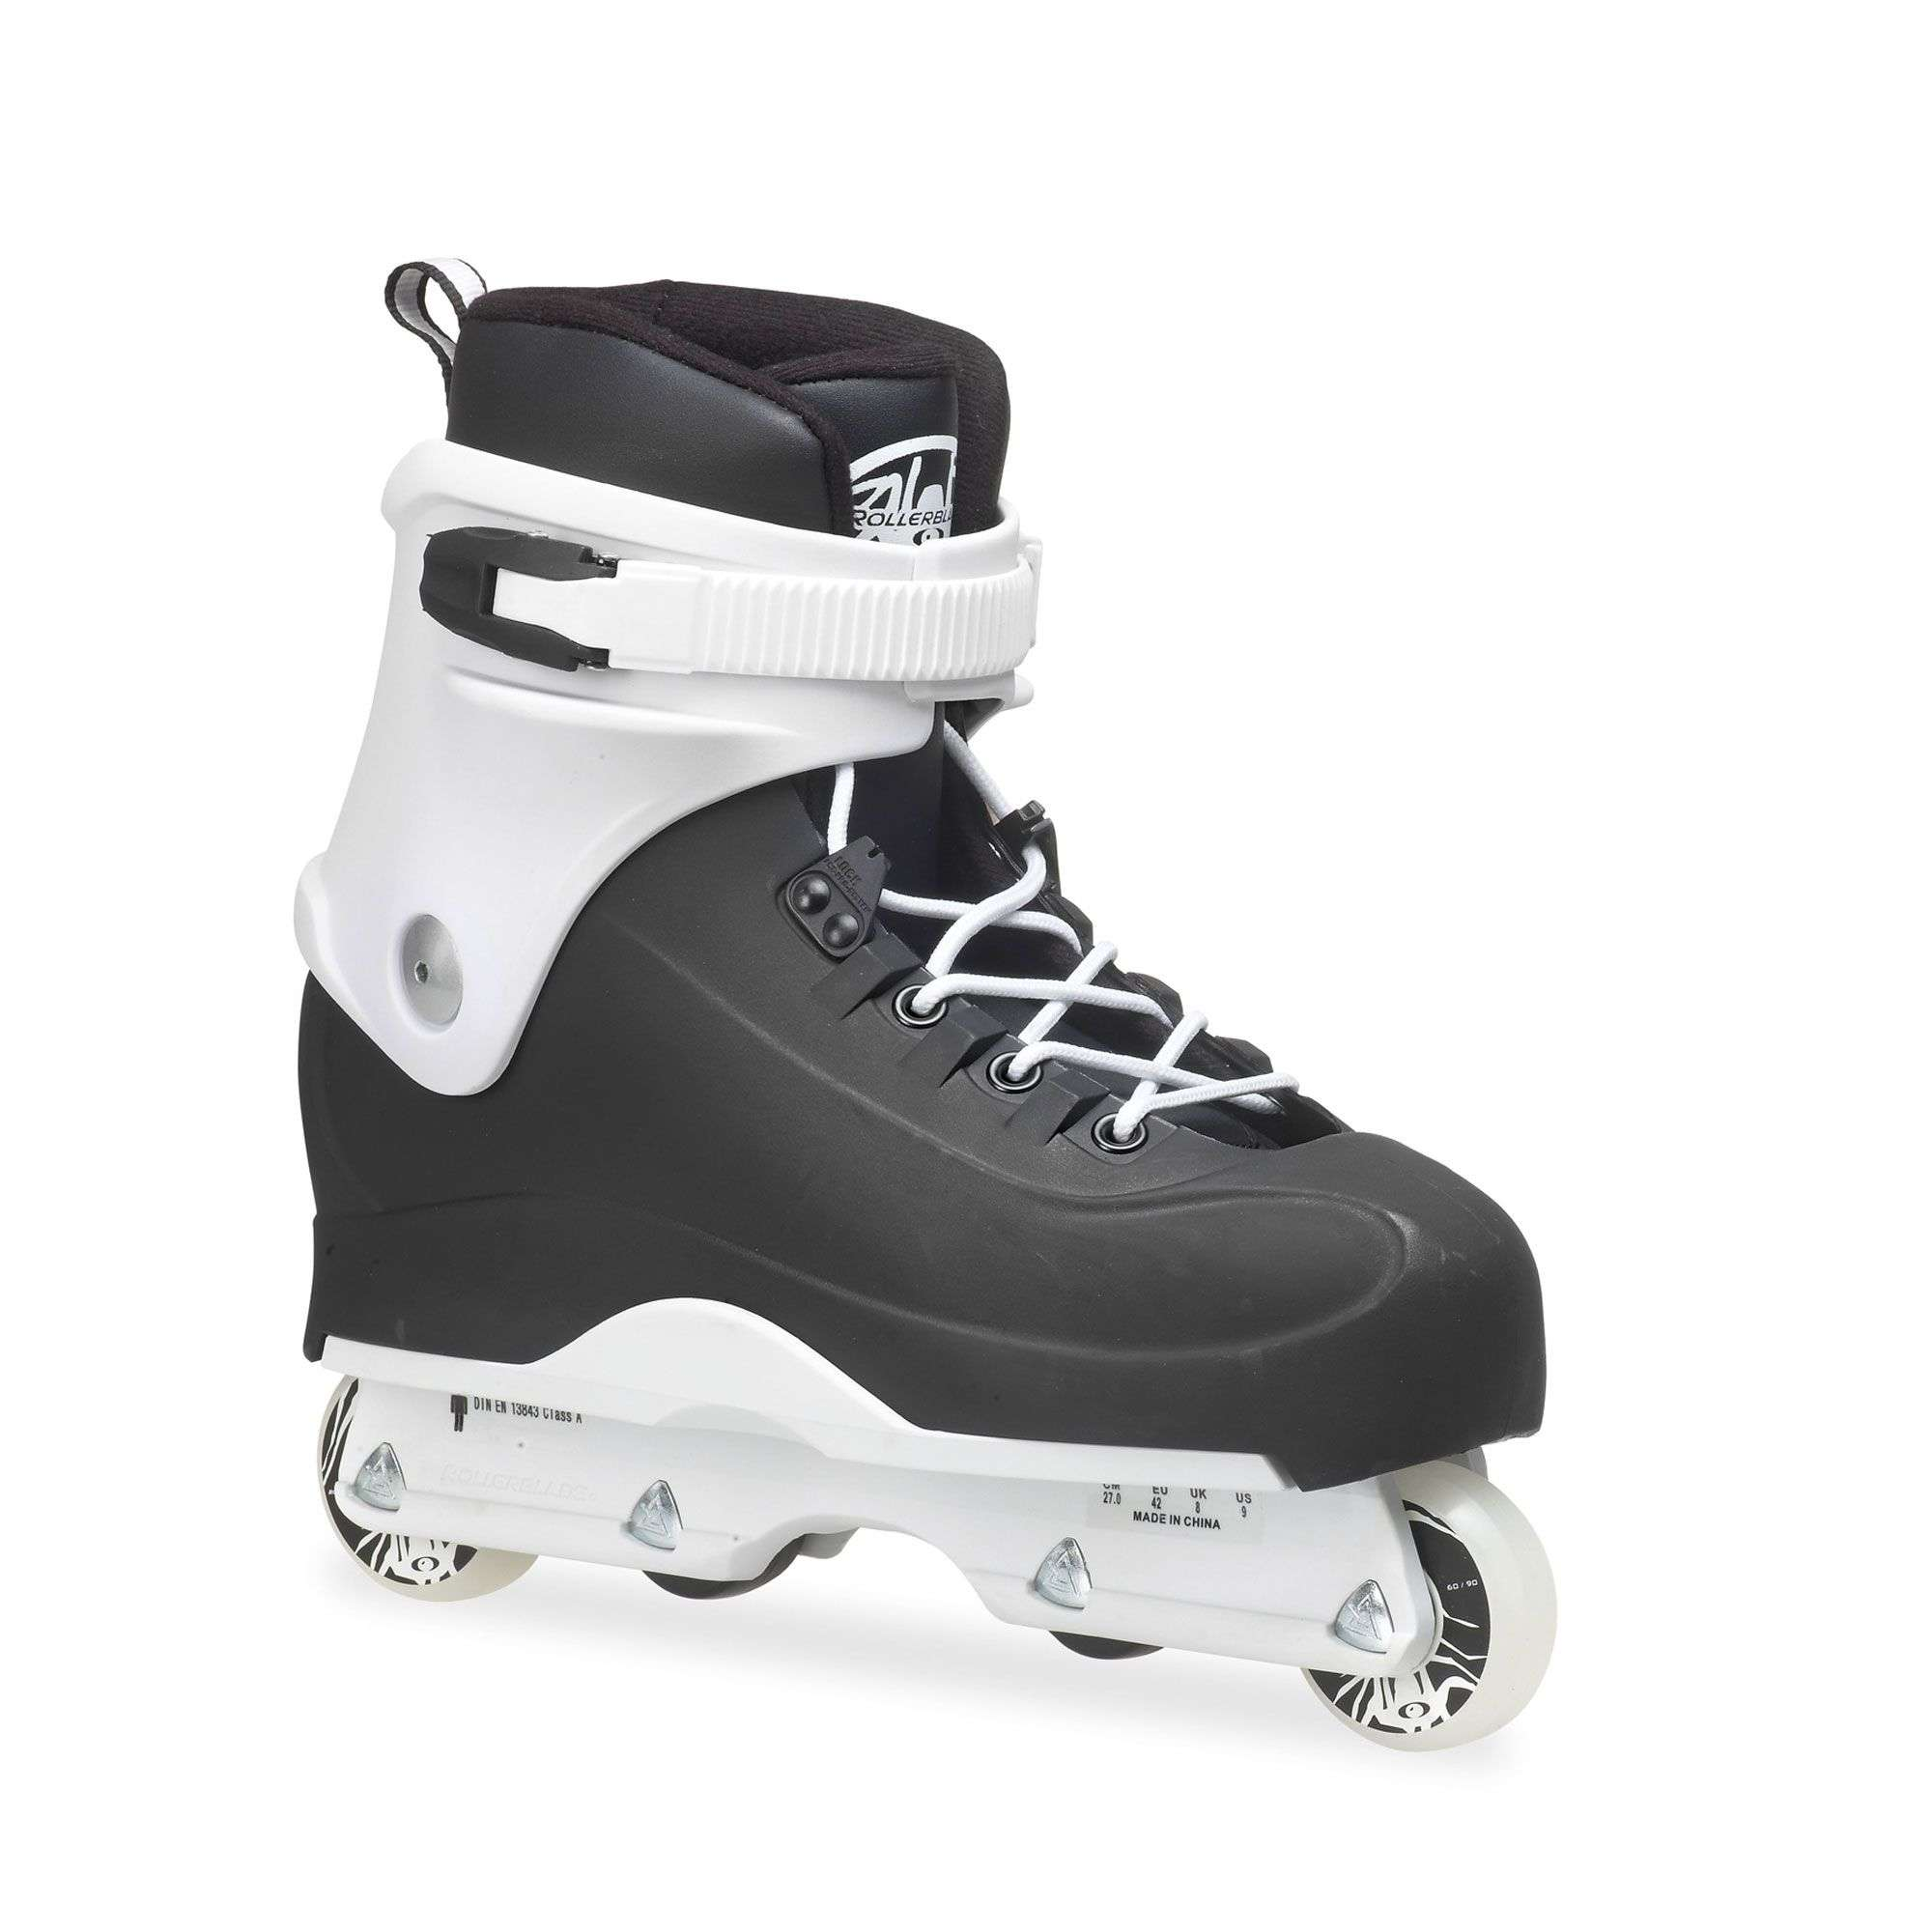 inline skates for rough roads